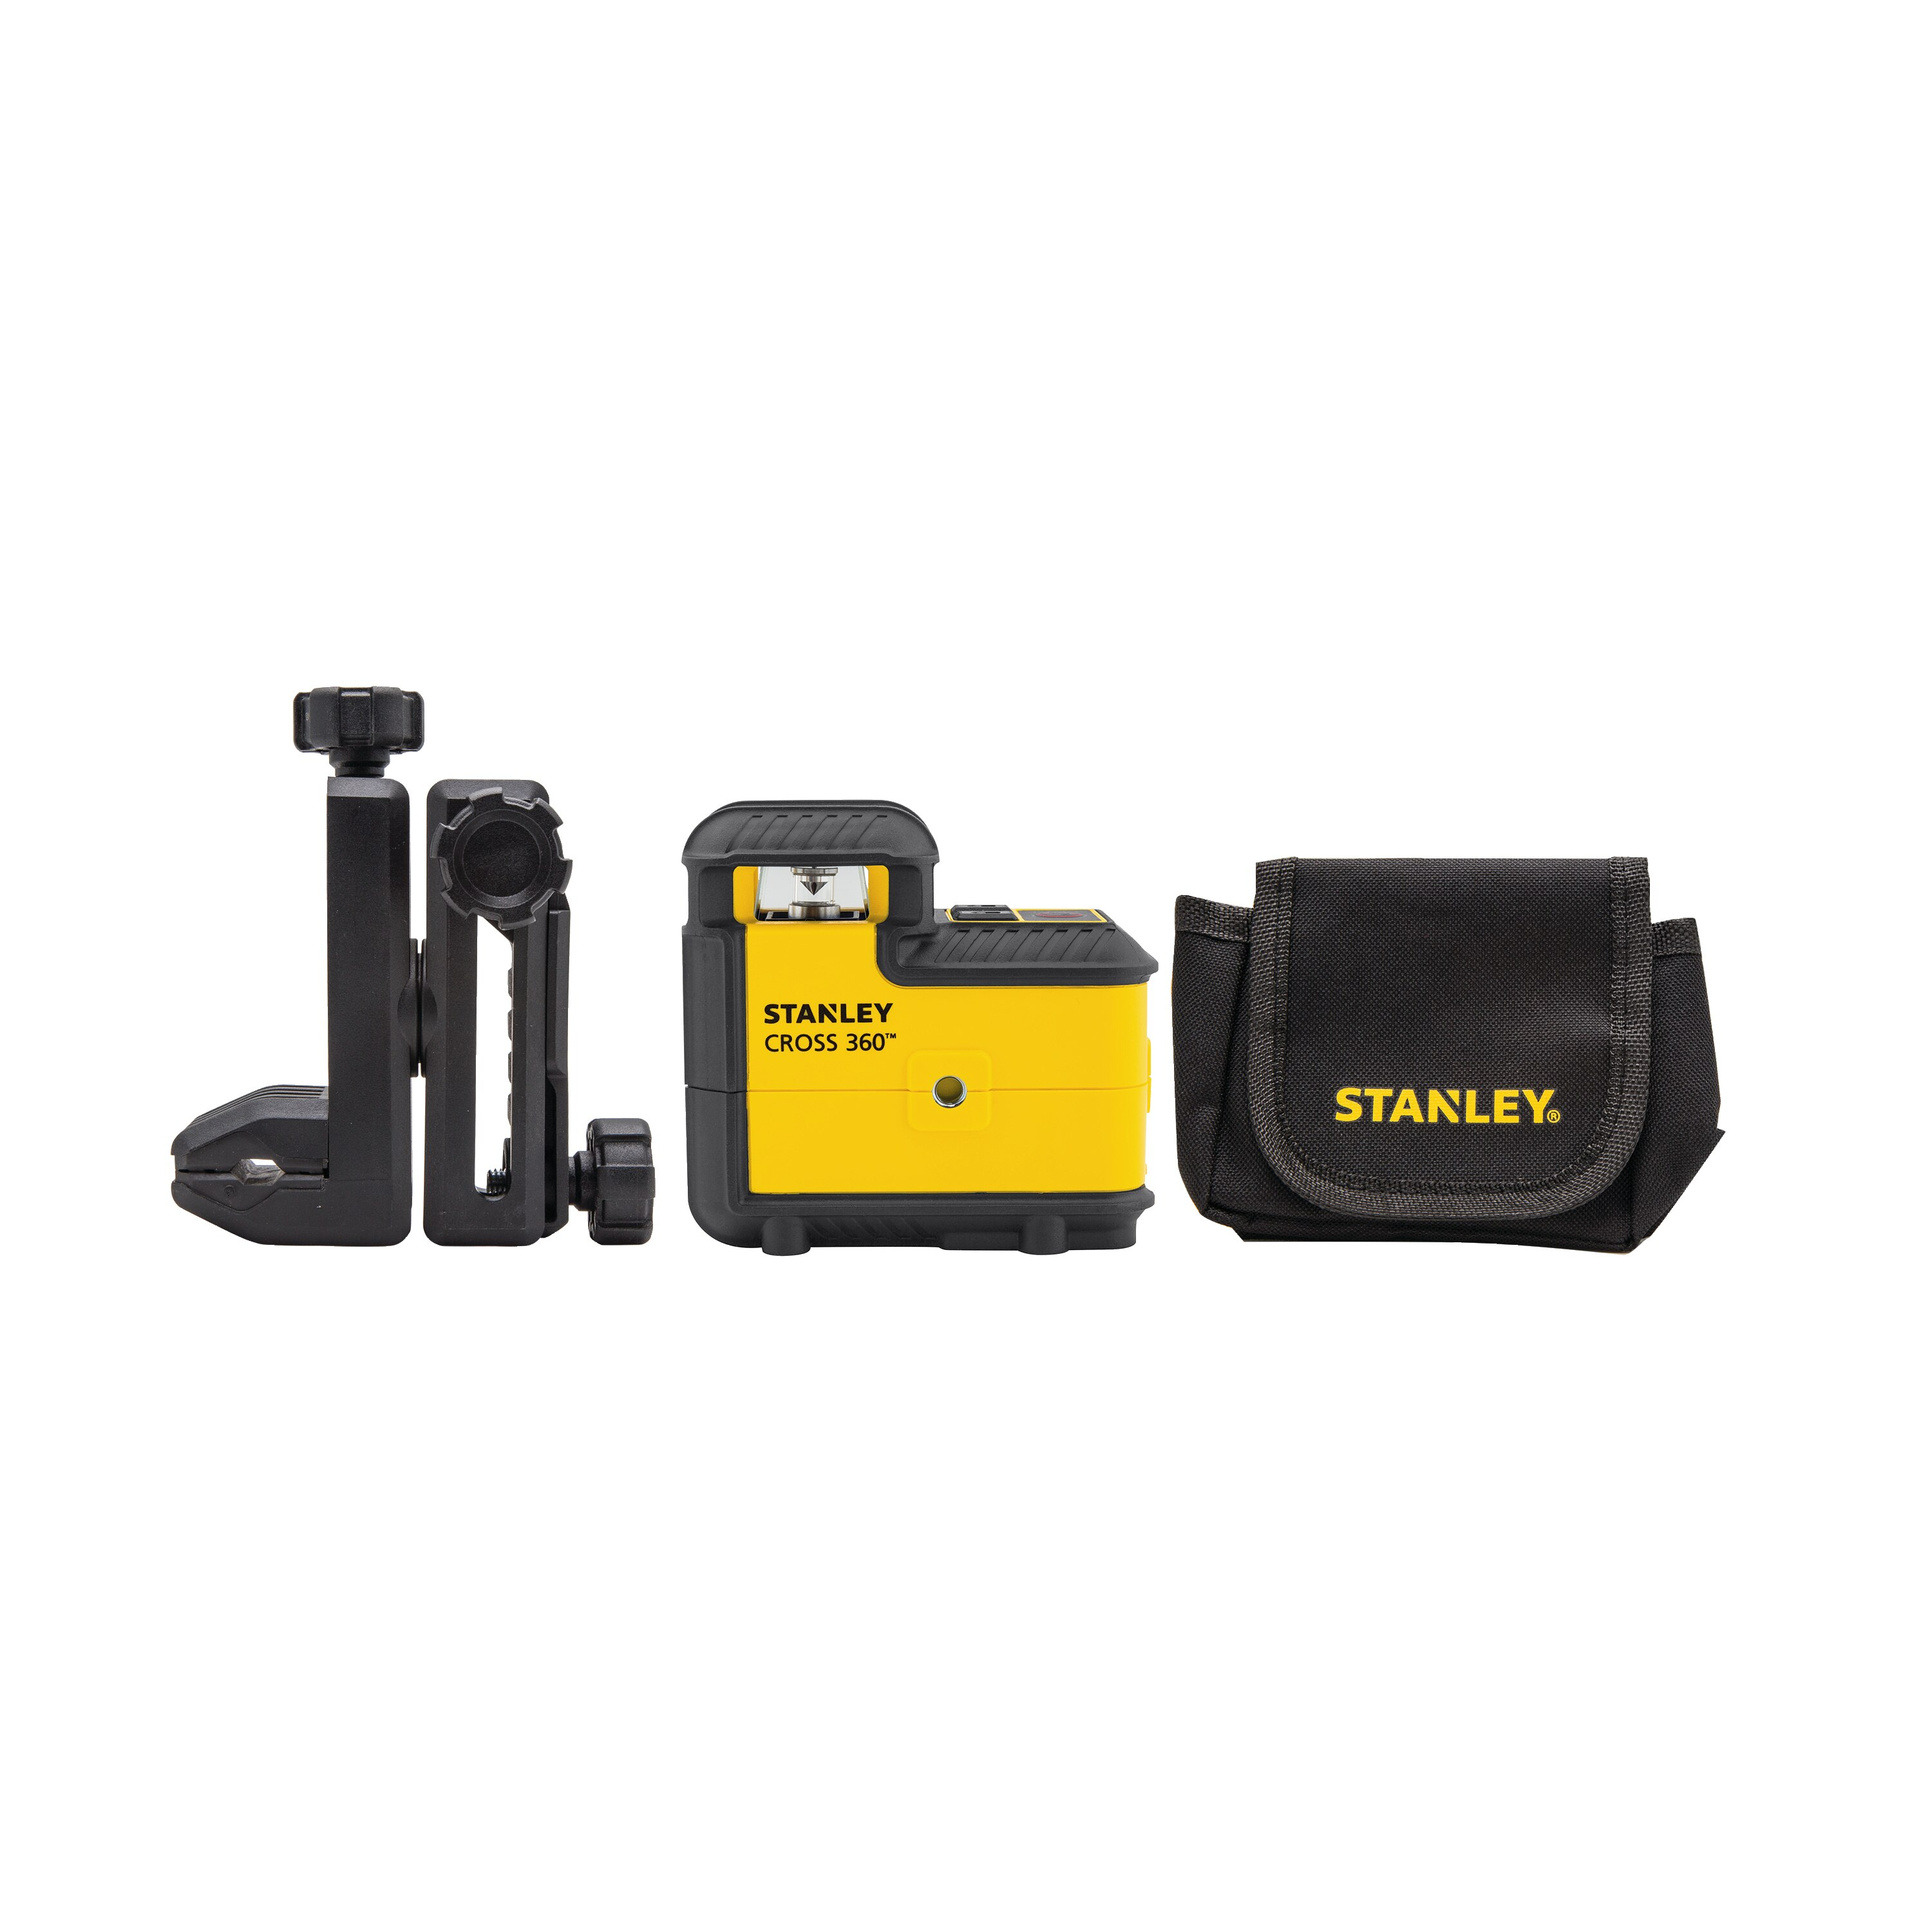 Stanley Tools - CROSS 360 Red Beam Line Laser Level - STHT77504